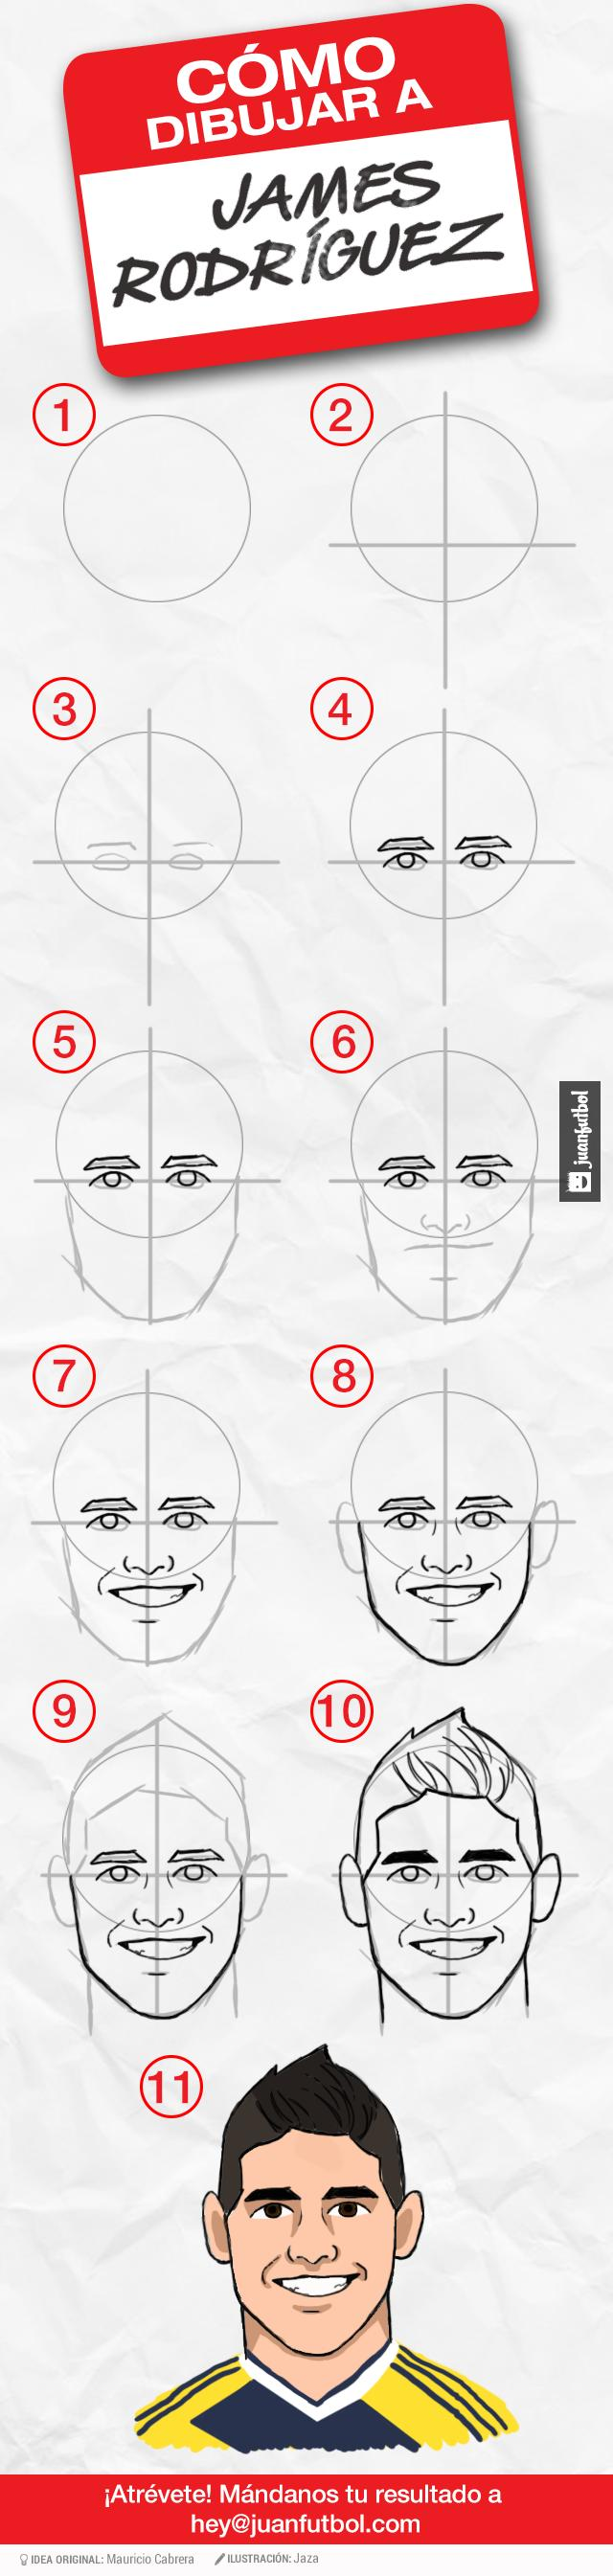 Tutorial De Cómo Dibujar A James Rodríguez James Rodrigues Dessin